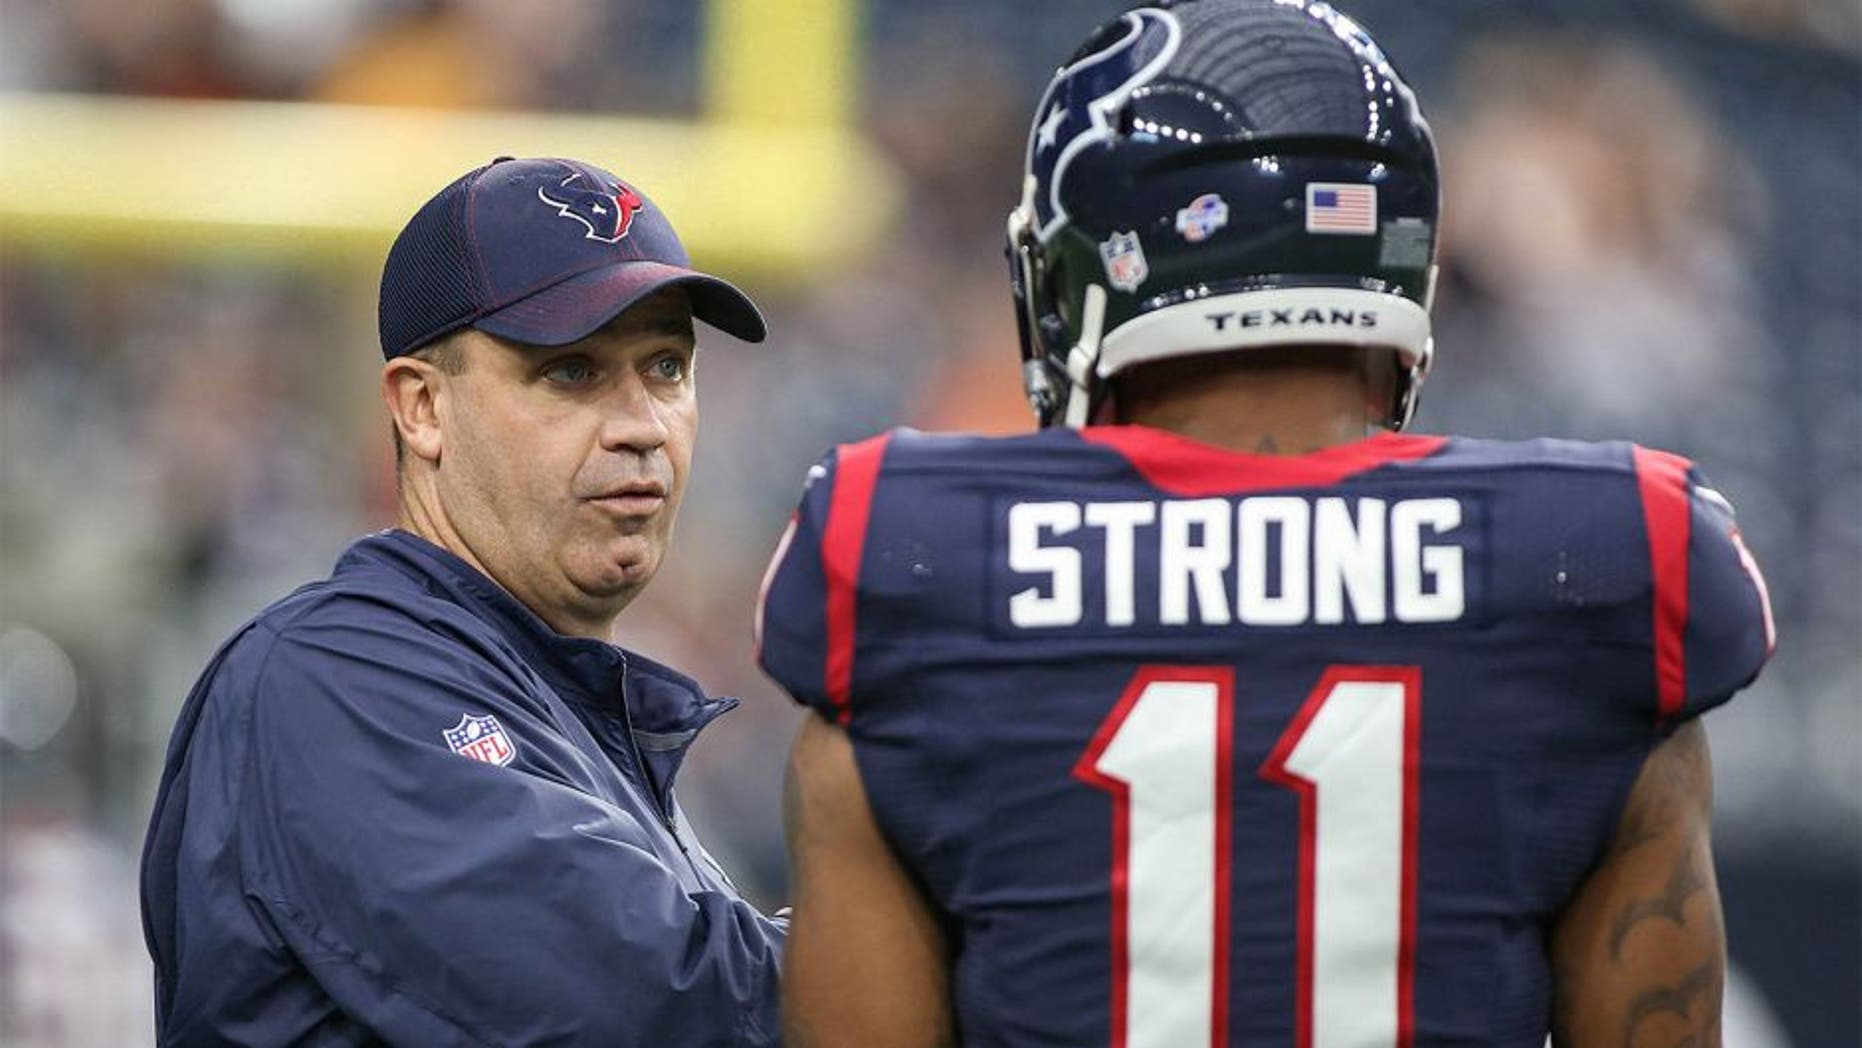 Aug 22, 2015; Houston, TX, USA; Houston Texans head coach Bill O'Brien talks with wide receiver Jaelen Strong (11) before a game against the Denver Broncos at NRG Stadium. Mandatory Credit: Troy Taormina-USA TODAY Sports